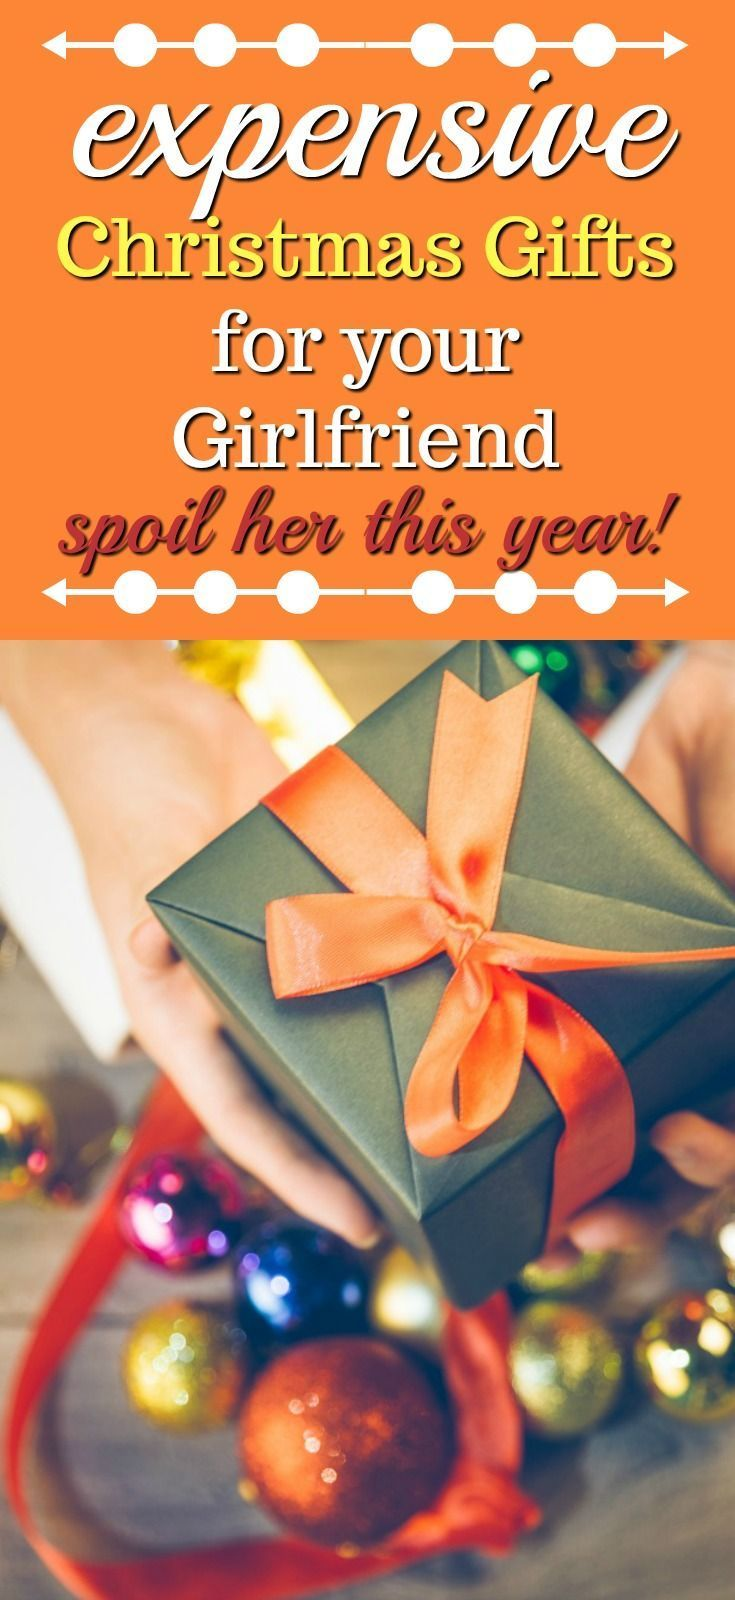 Expensive Christmas Gifts For Your Girlfriend